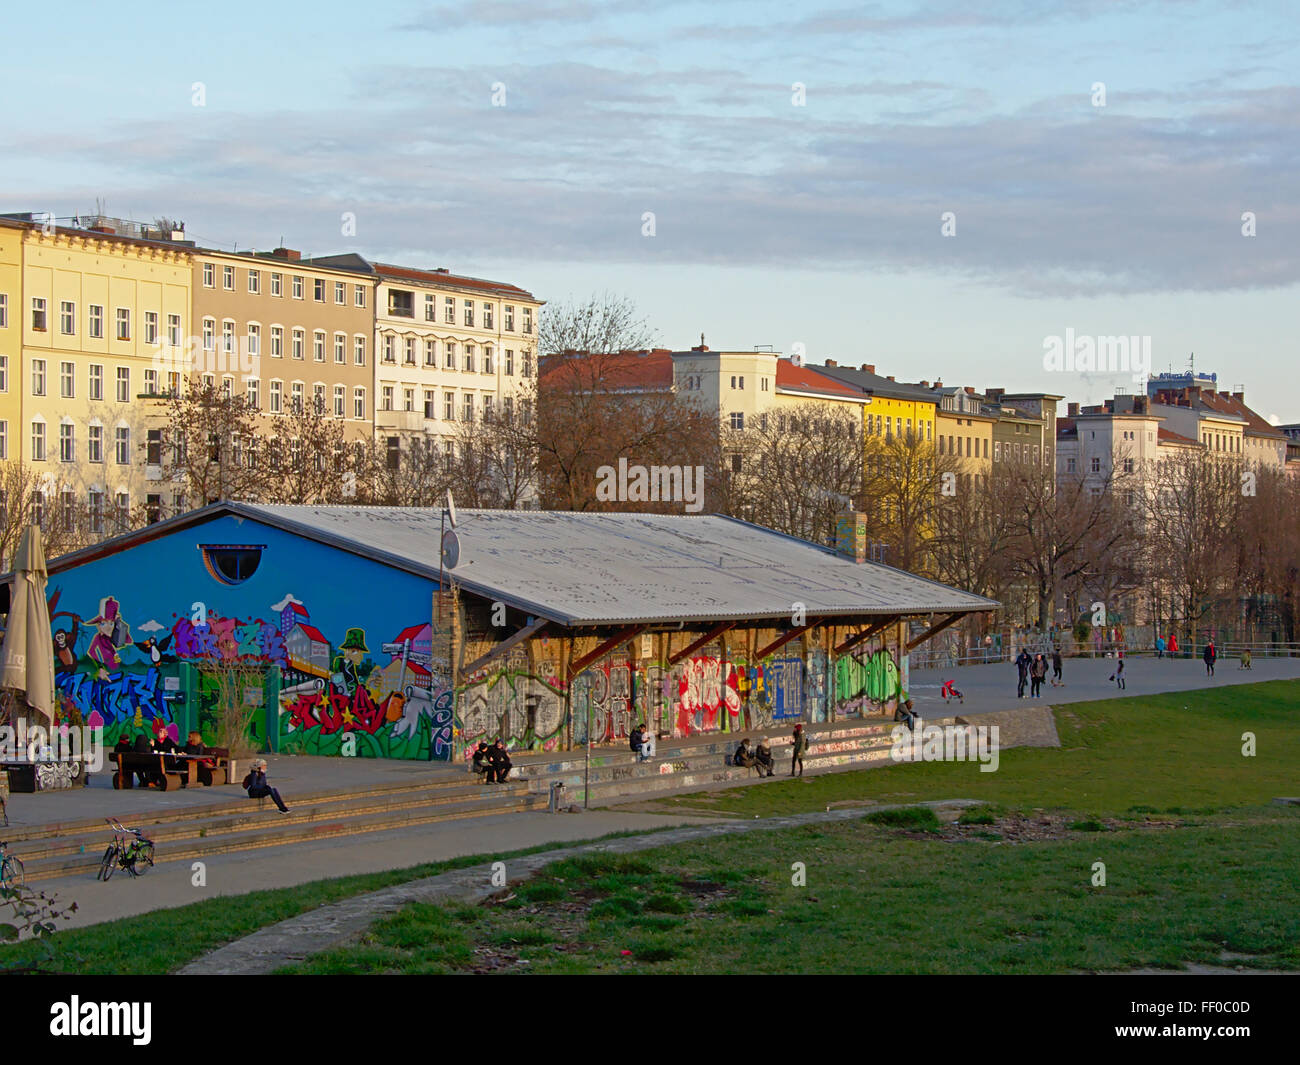 People hanging out around an old railway hangar with colourful graffiti at Görlitzerparc, Berlin Stock Photo